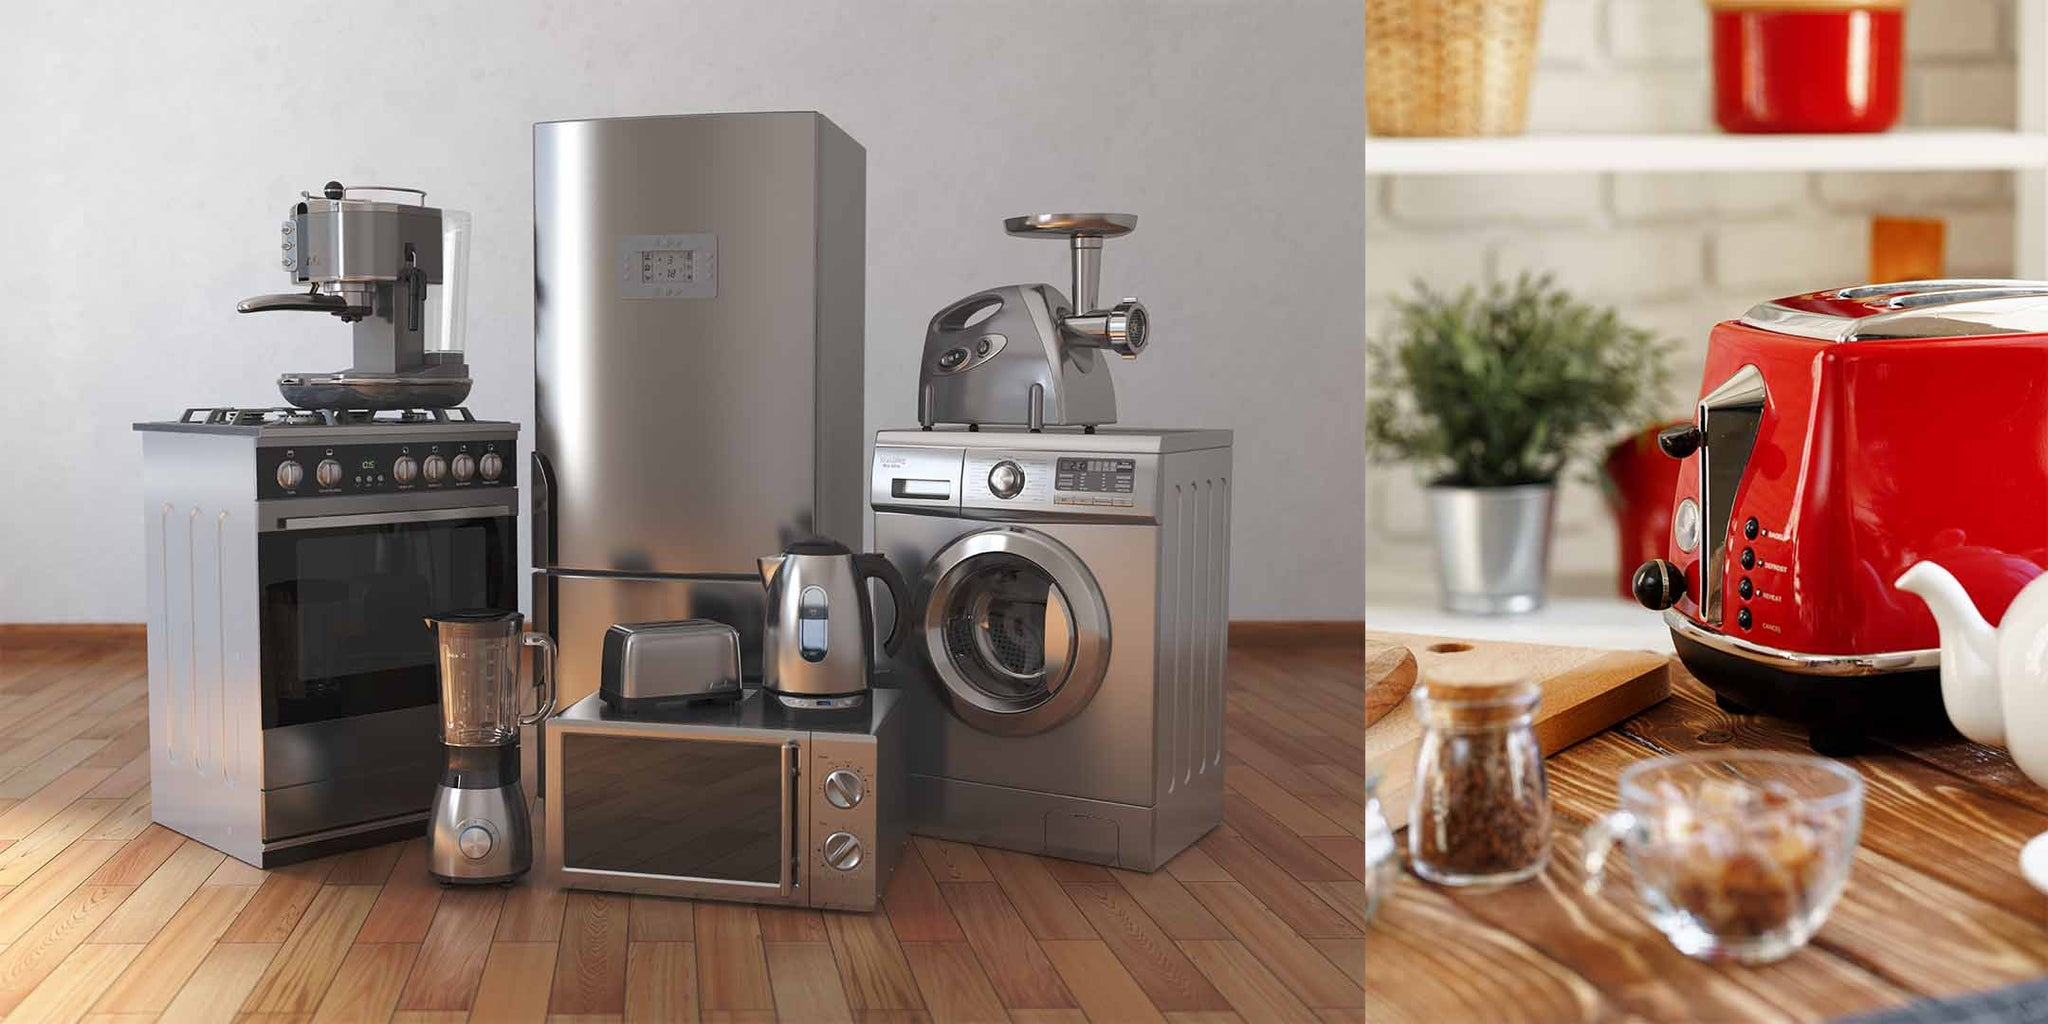 The Best Presents for Foodies- Medium Sized Kitchen Appliances